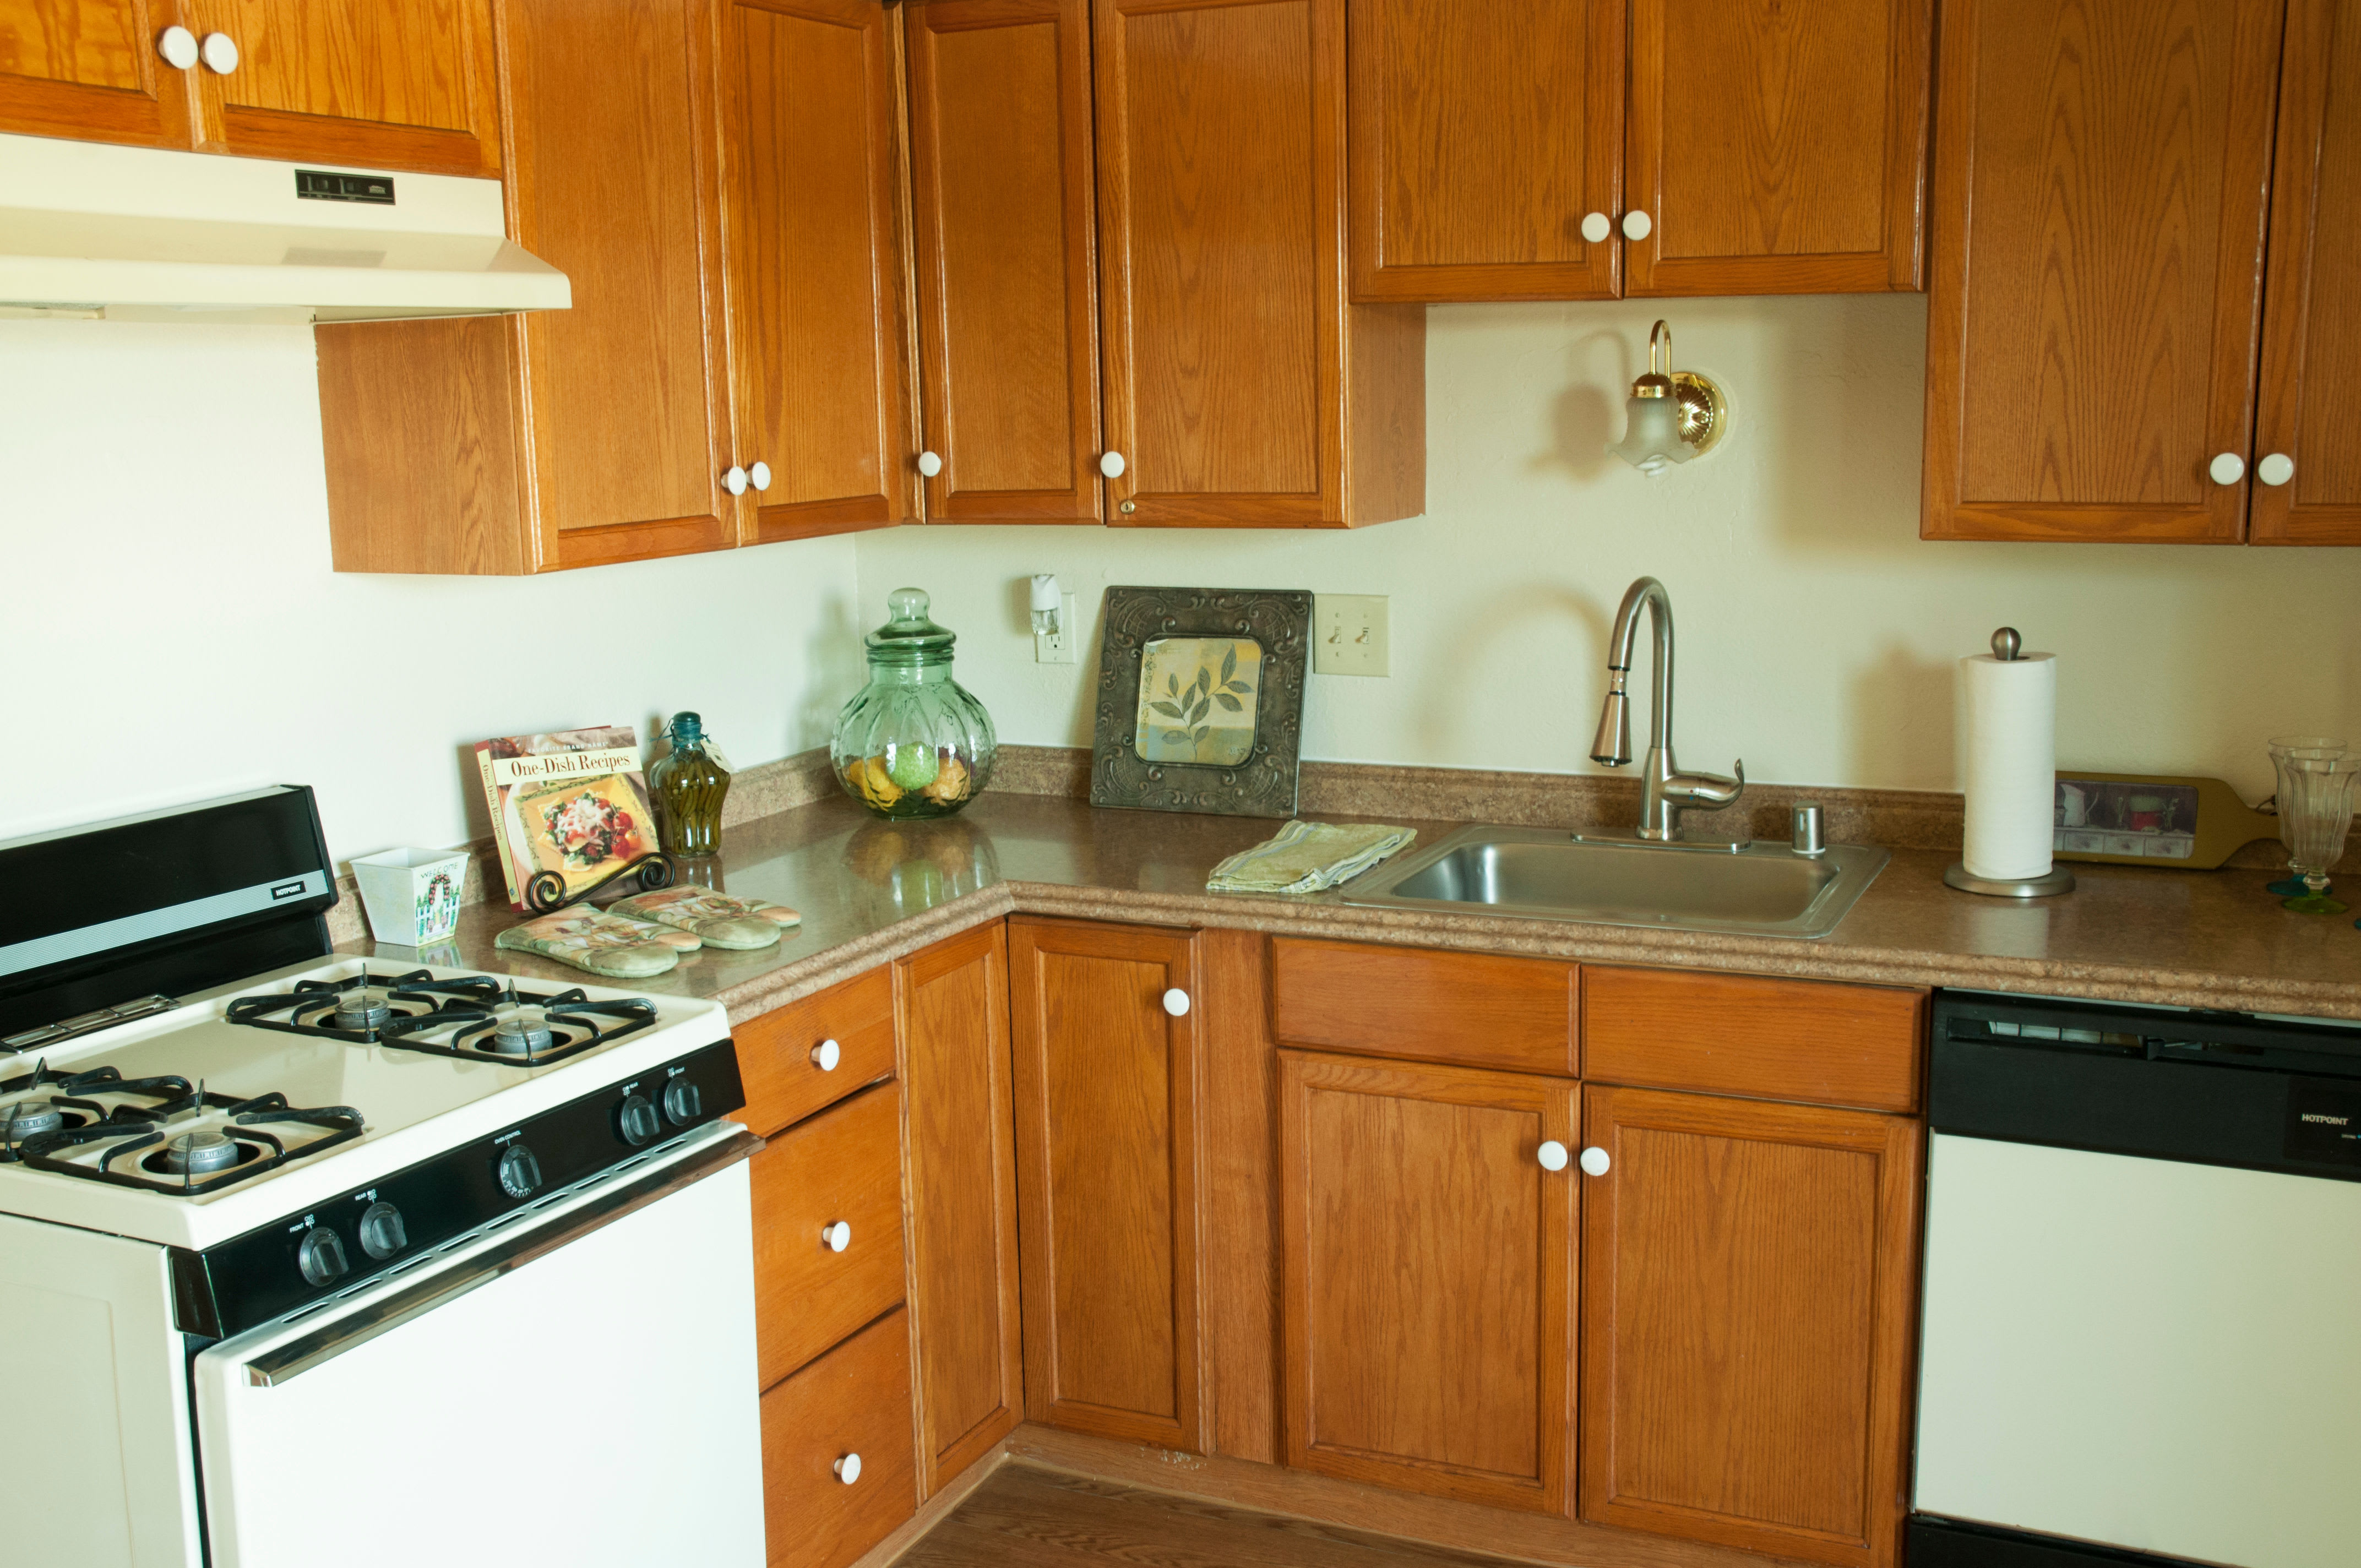 Kitchen at apartments in Antioch, California